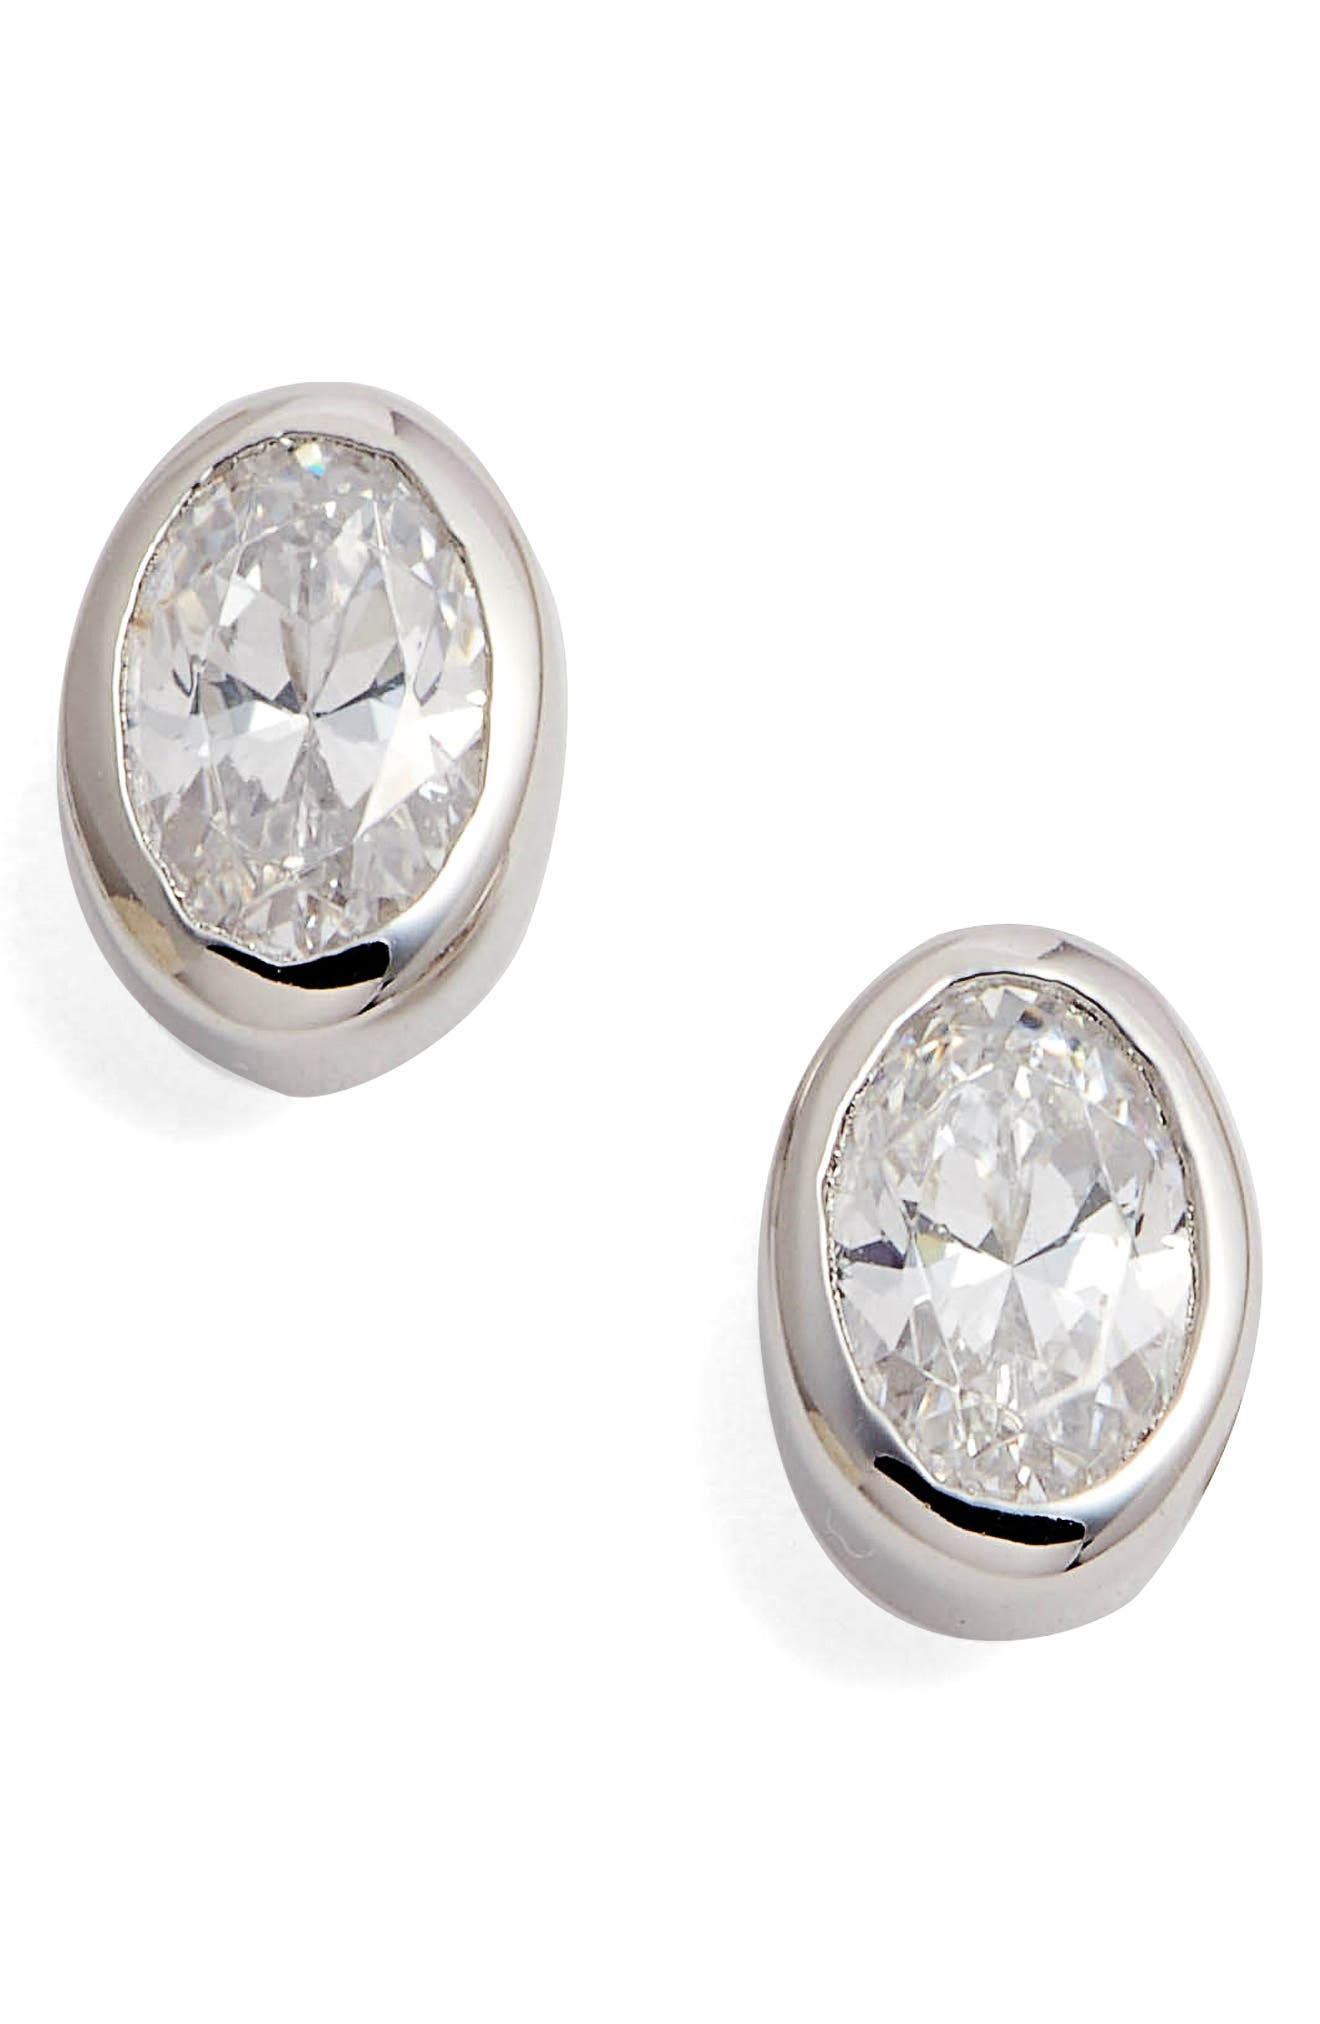 Bezel Set Oval Stud Earrings,                         Main,                         color, Silver/ Clear